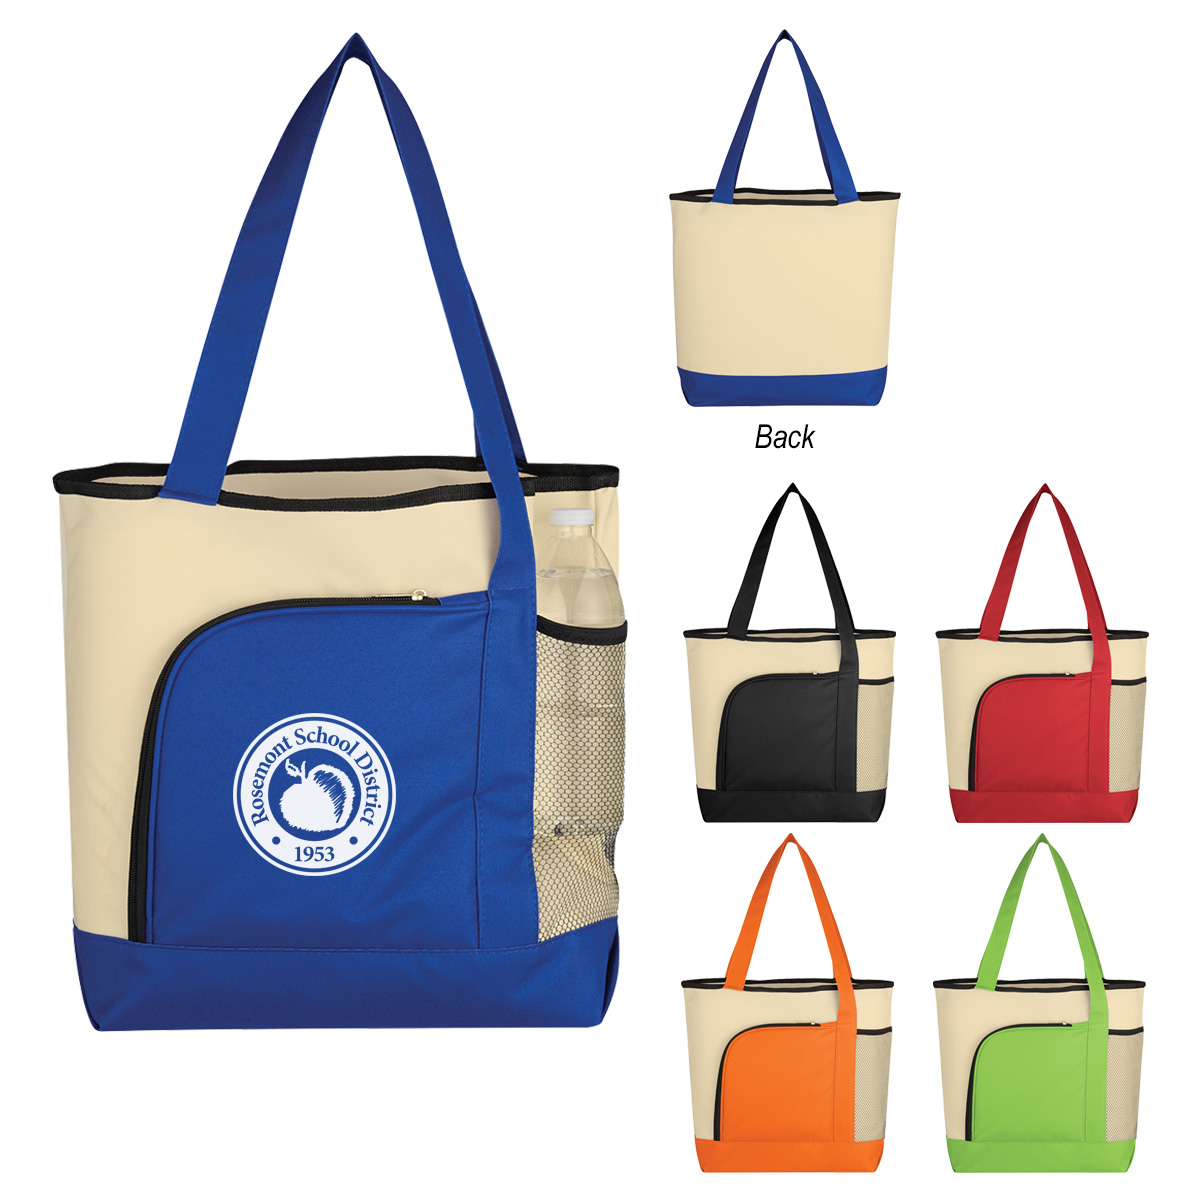 #CM 3183 Around The Bend Tote Bag